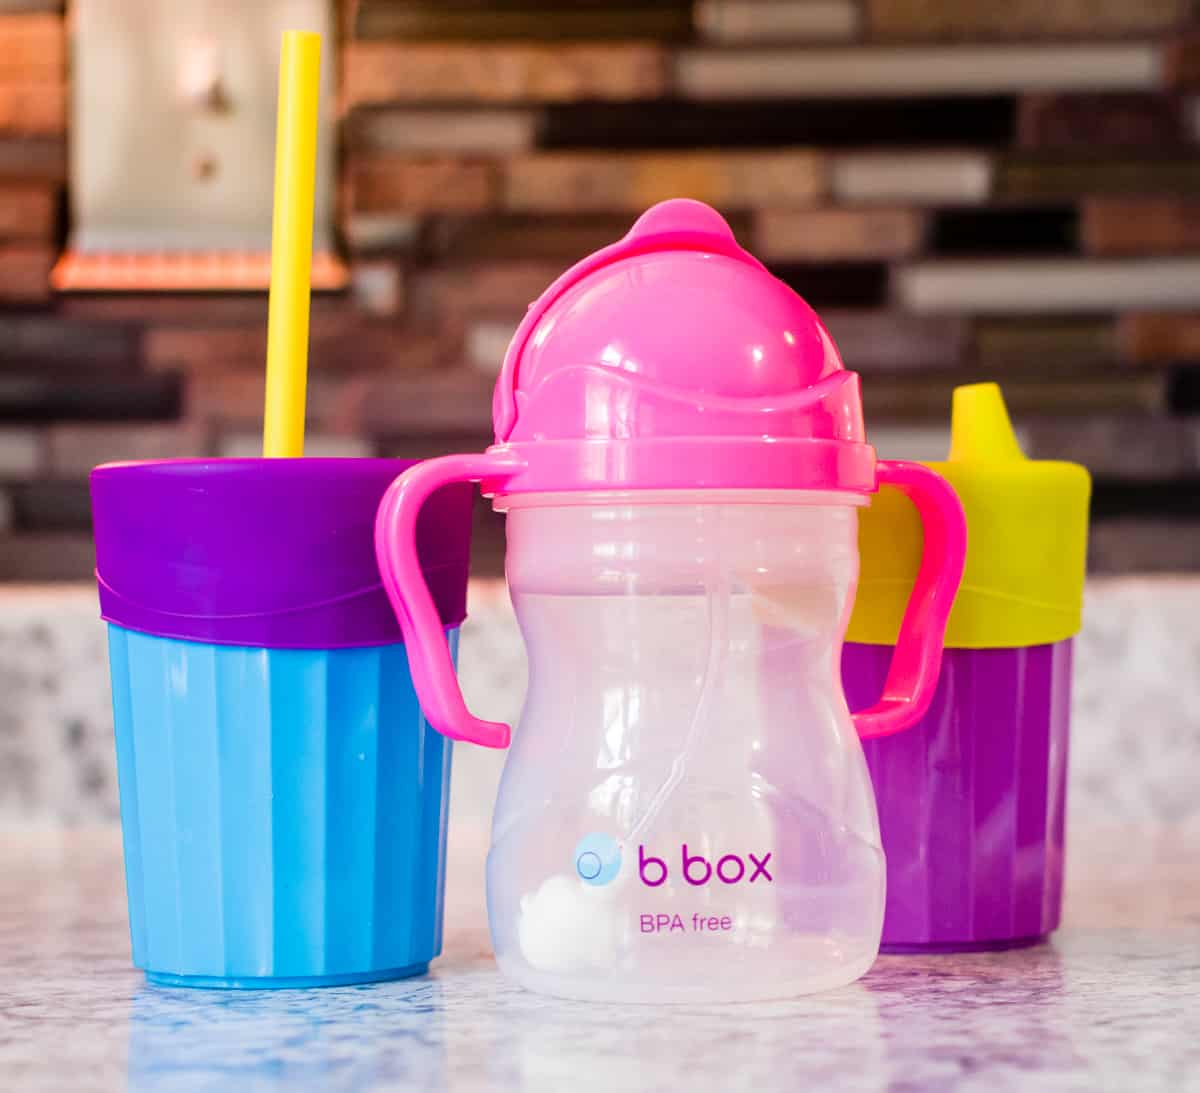 BBox daily mom parent portal holiday Baby gifts for girls and boys